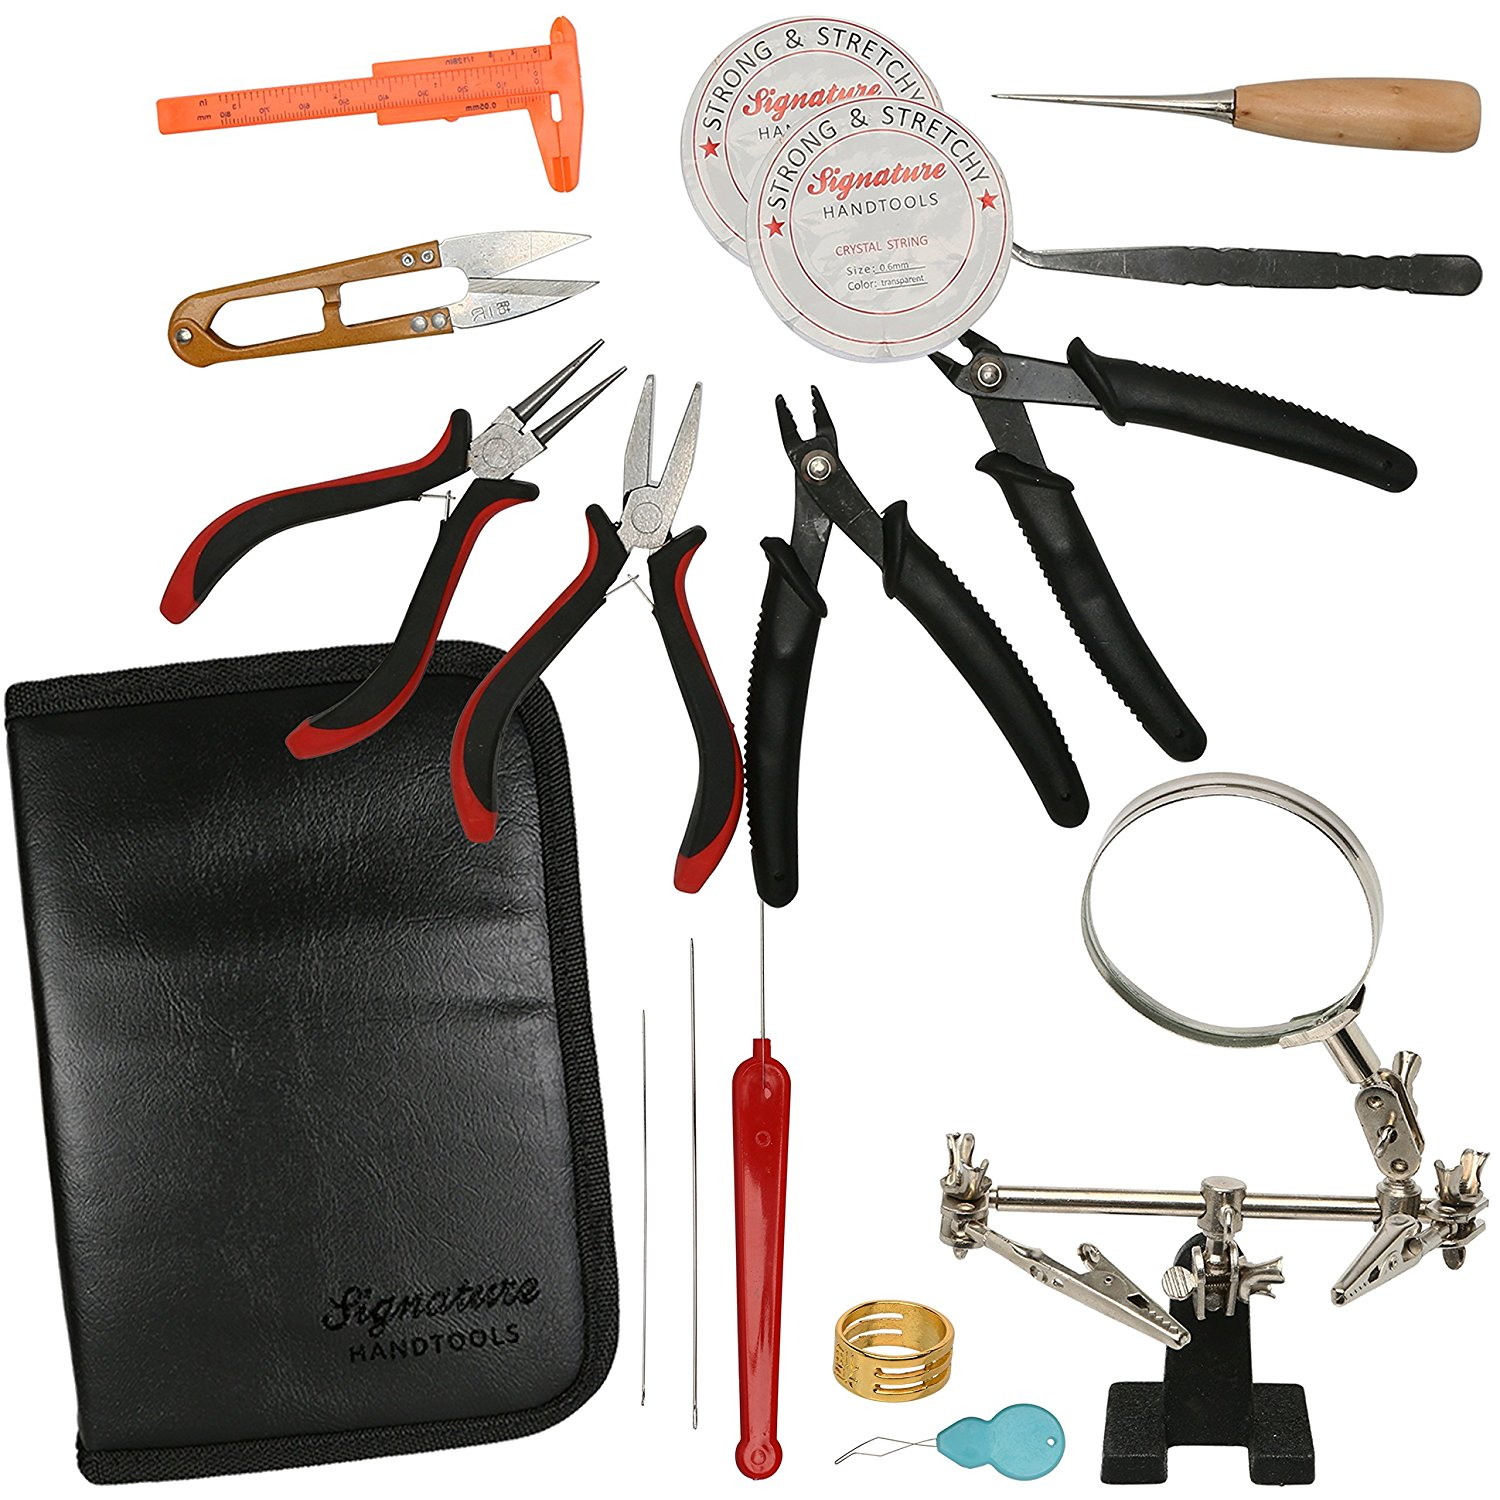 Premium Jewelry Making Craft Supply Kit - 16 Piece Tool Set, Includes Deluxe Storage Case